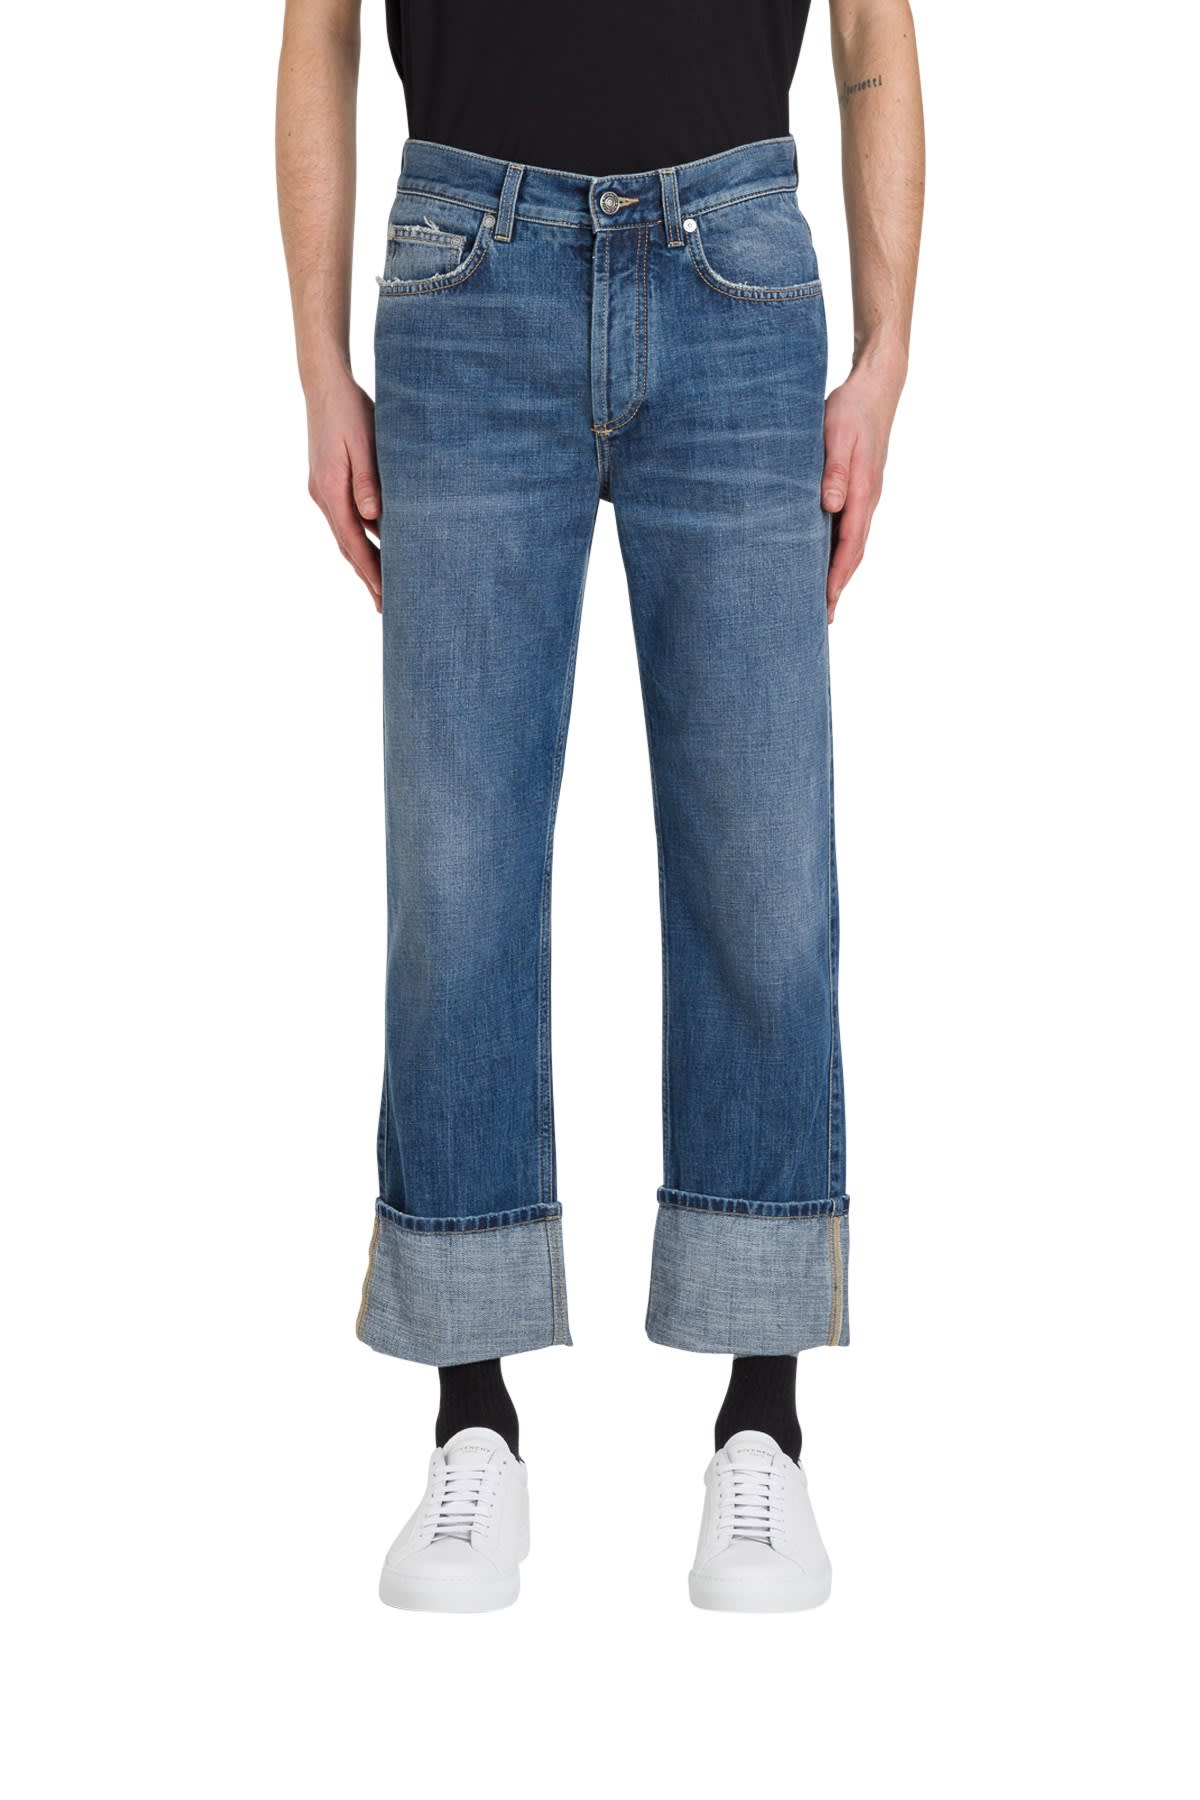 Givenchy Cropped Jeans